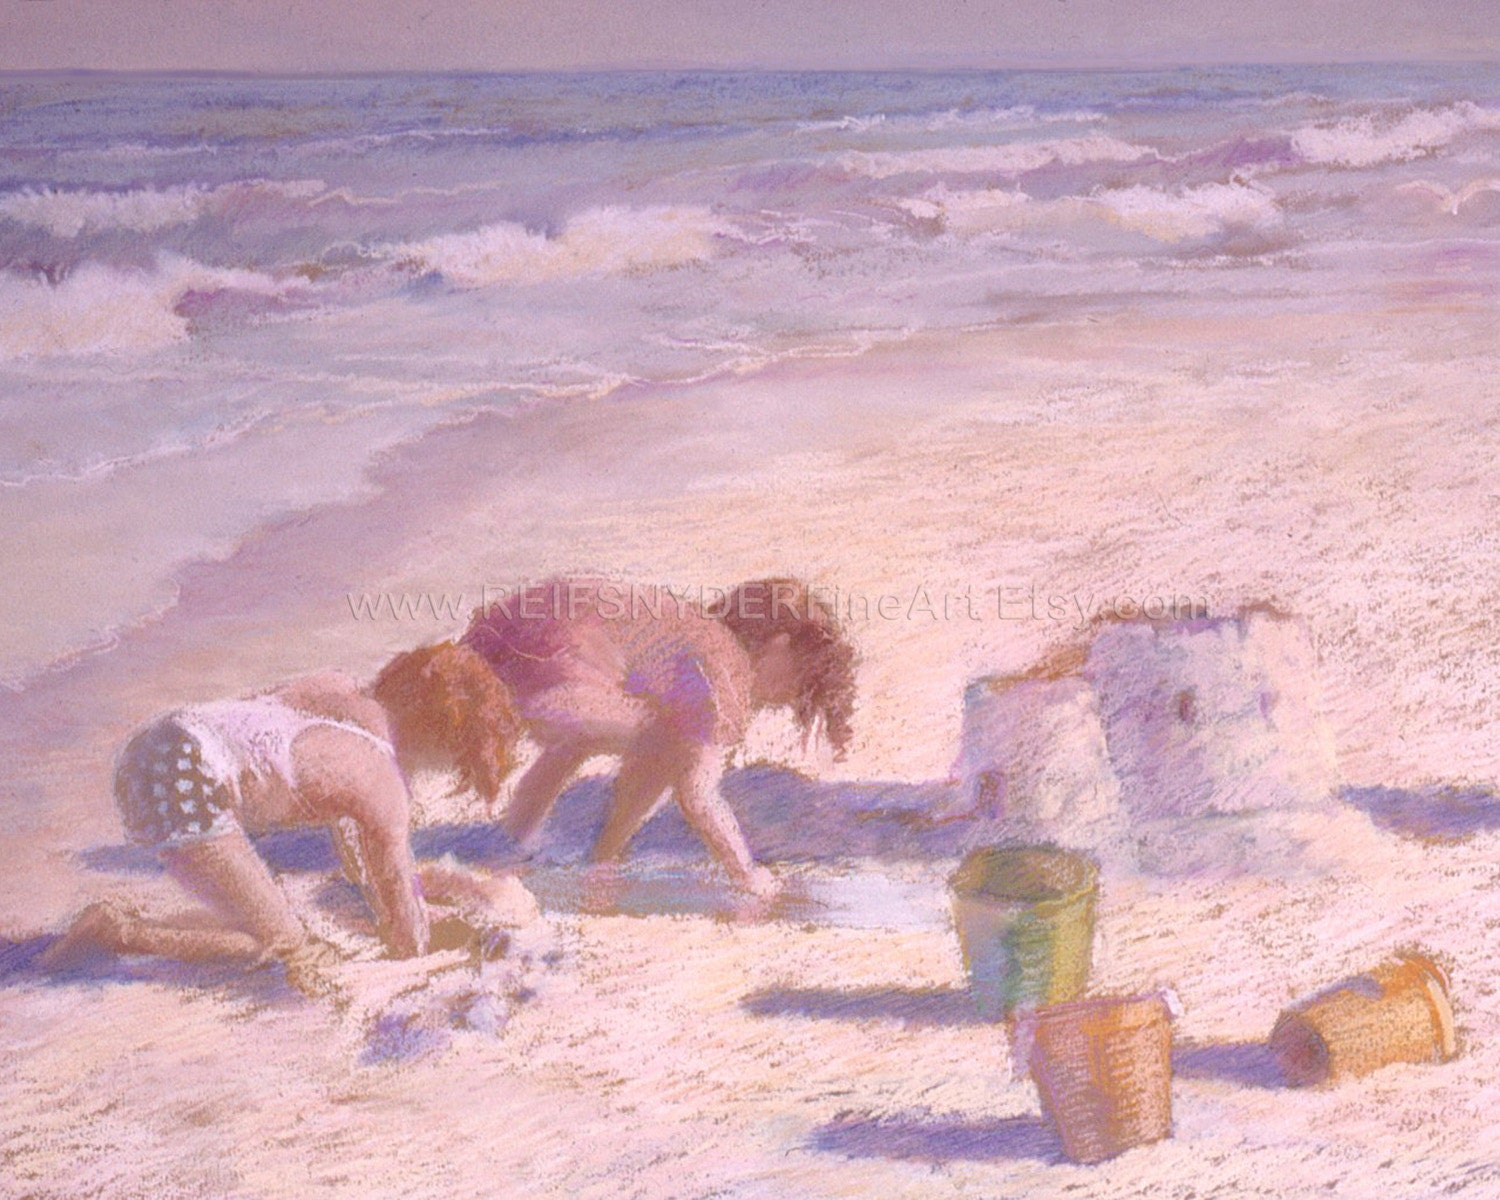 Giclee beach print of two children, playing in sand,sandcastle,ocean,shore,seashore,blue,yellow,pink,lavender - REIFSNYDERFineArt